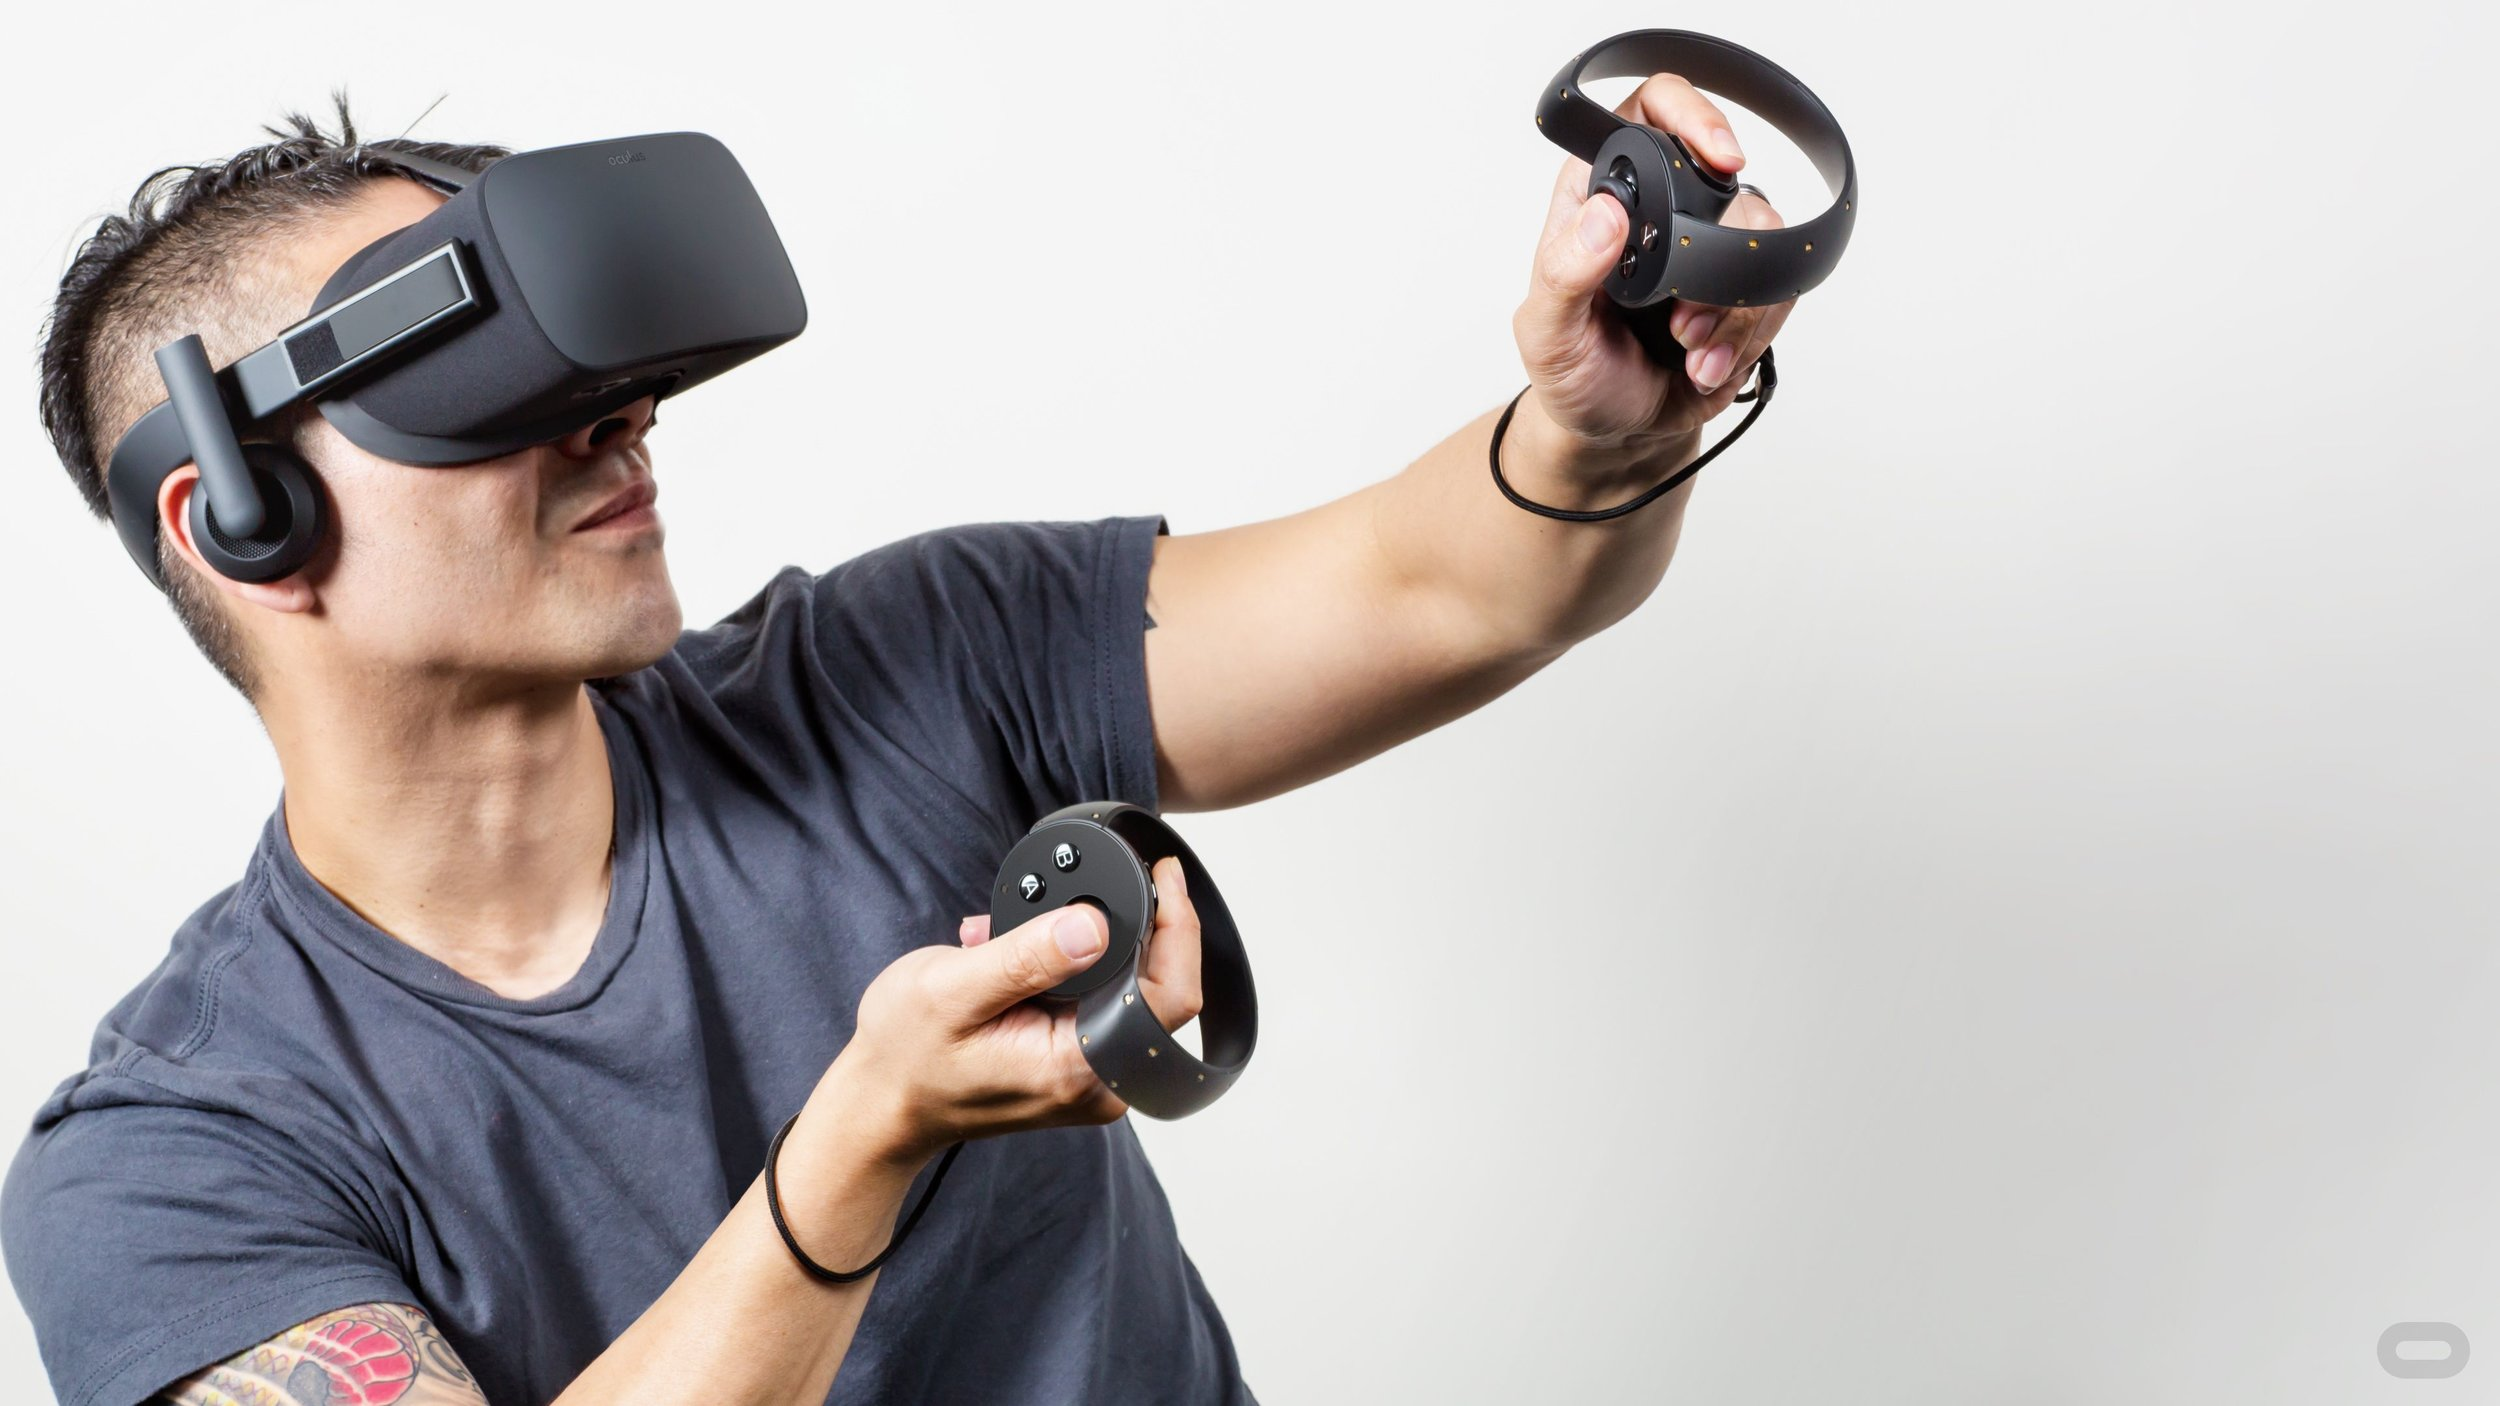 Oculus Rift - Virtual reality in extreme, started with 30+ games, new games every month.